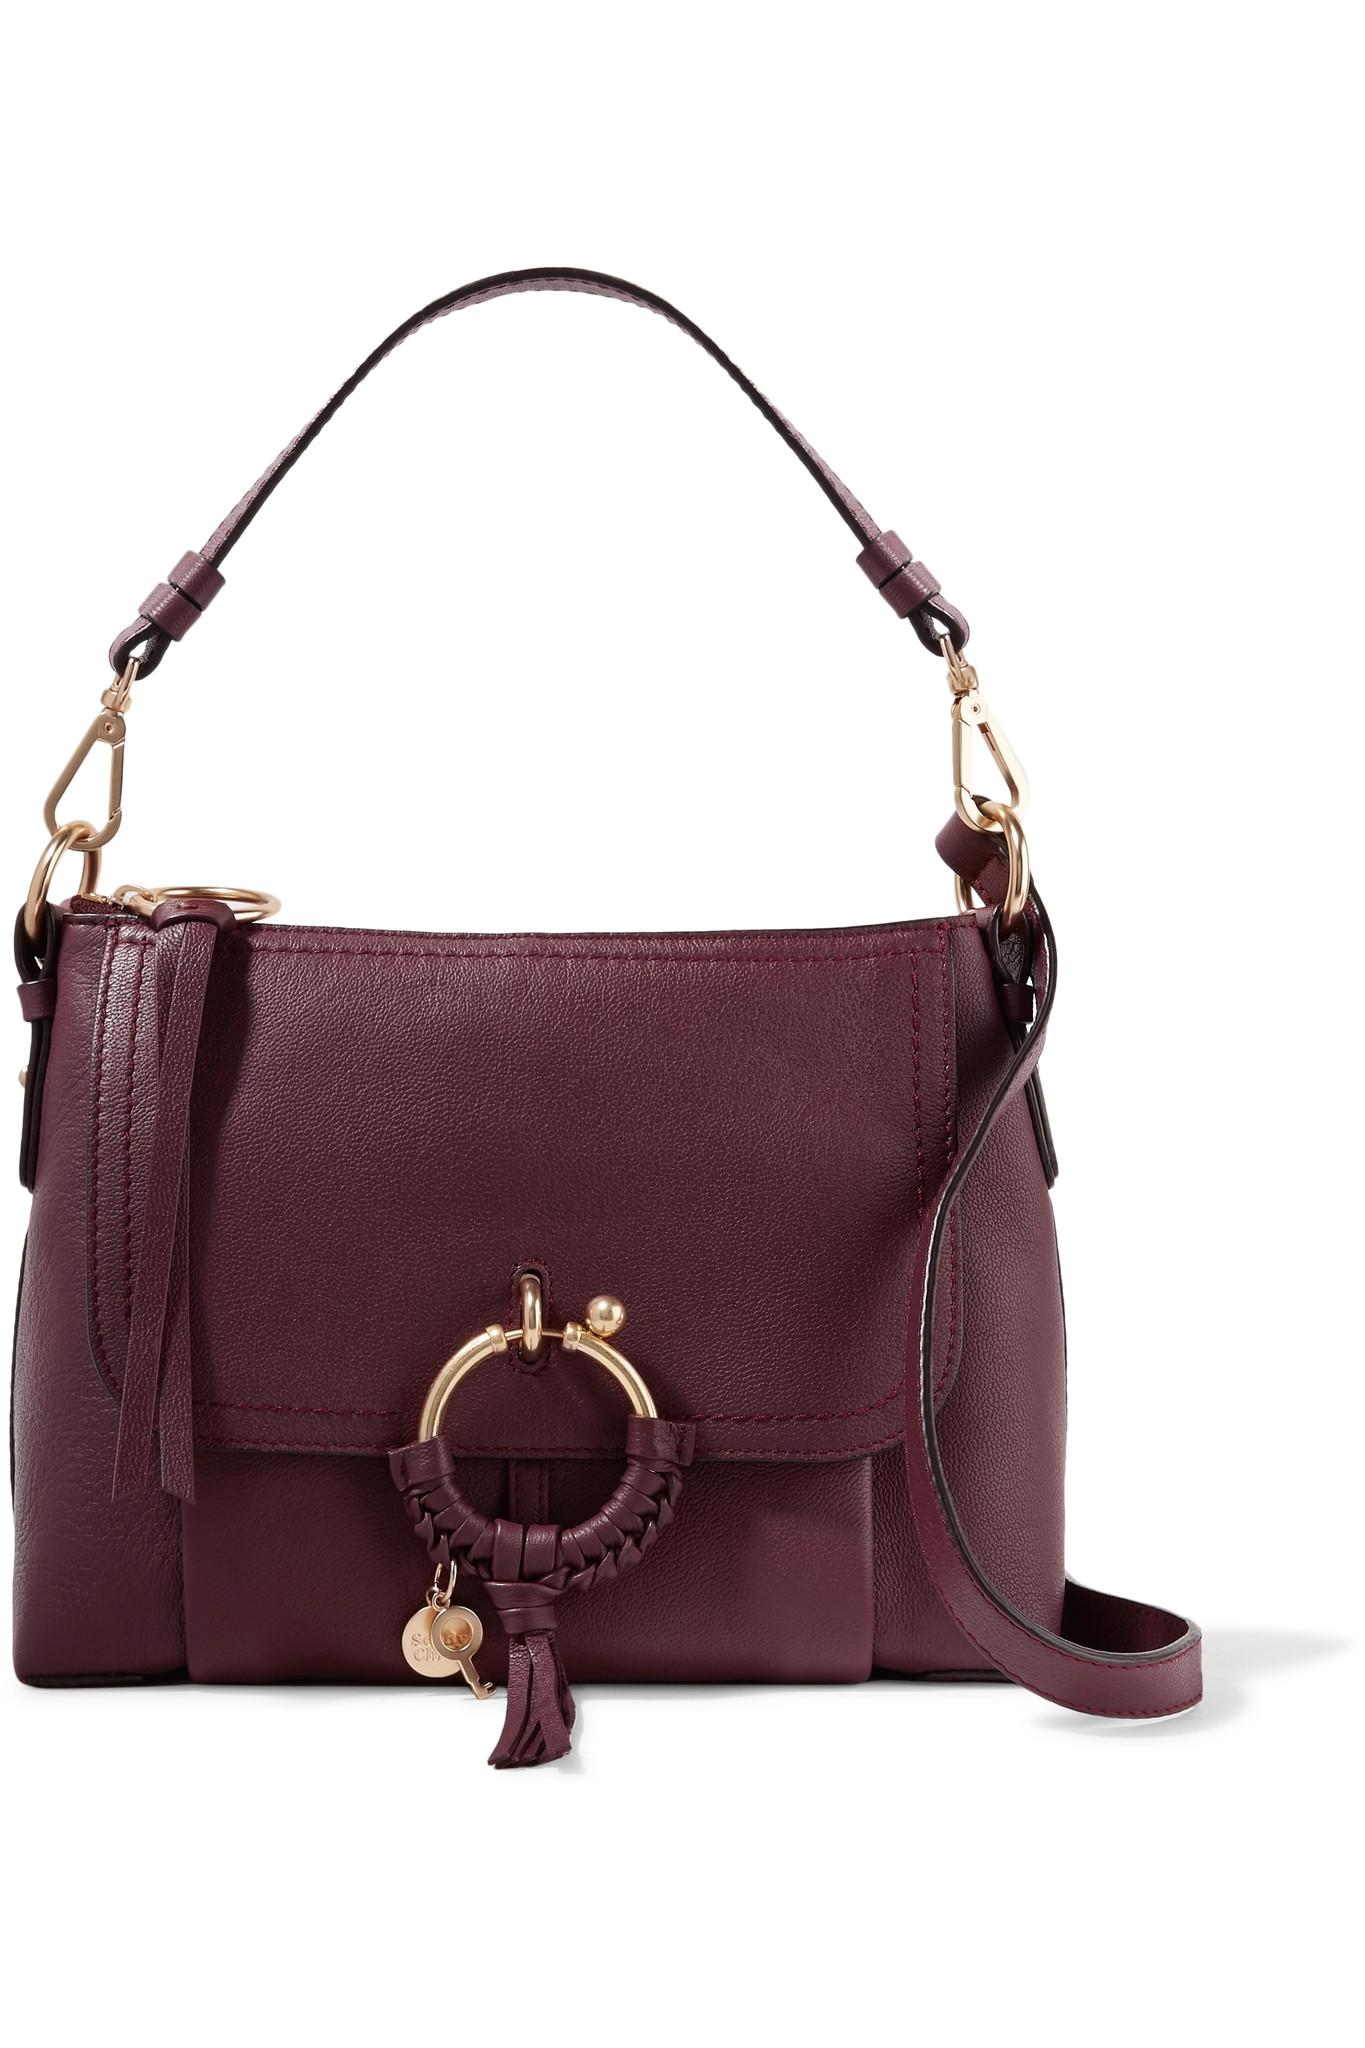 9d3bd82a64 Lyst - See By Chloé Joan Small Textured-leather Shoulder Bag in Purple